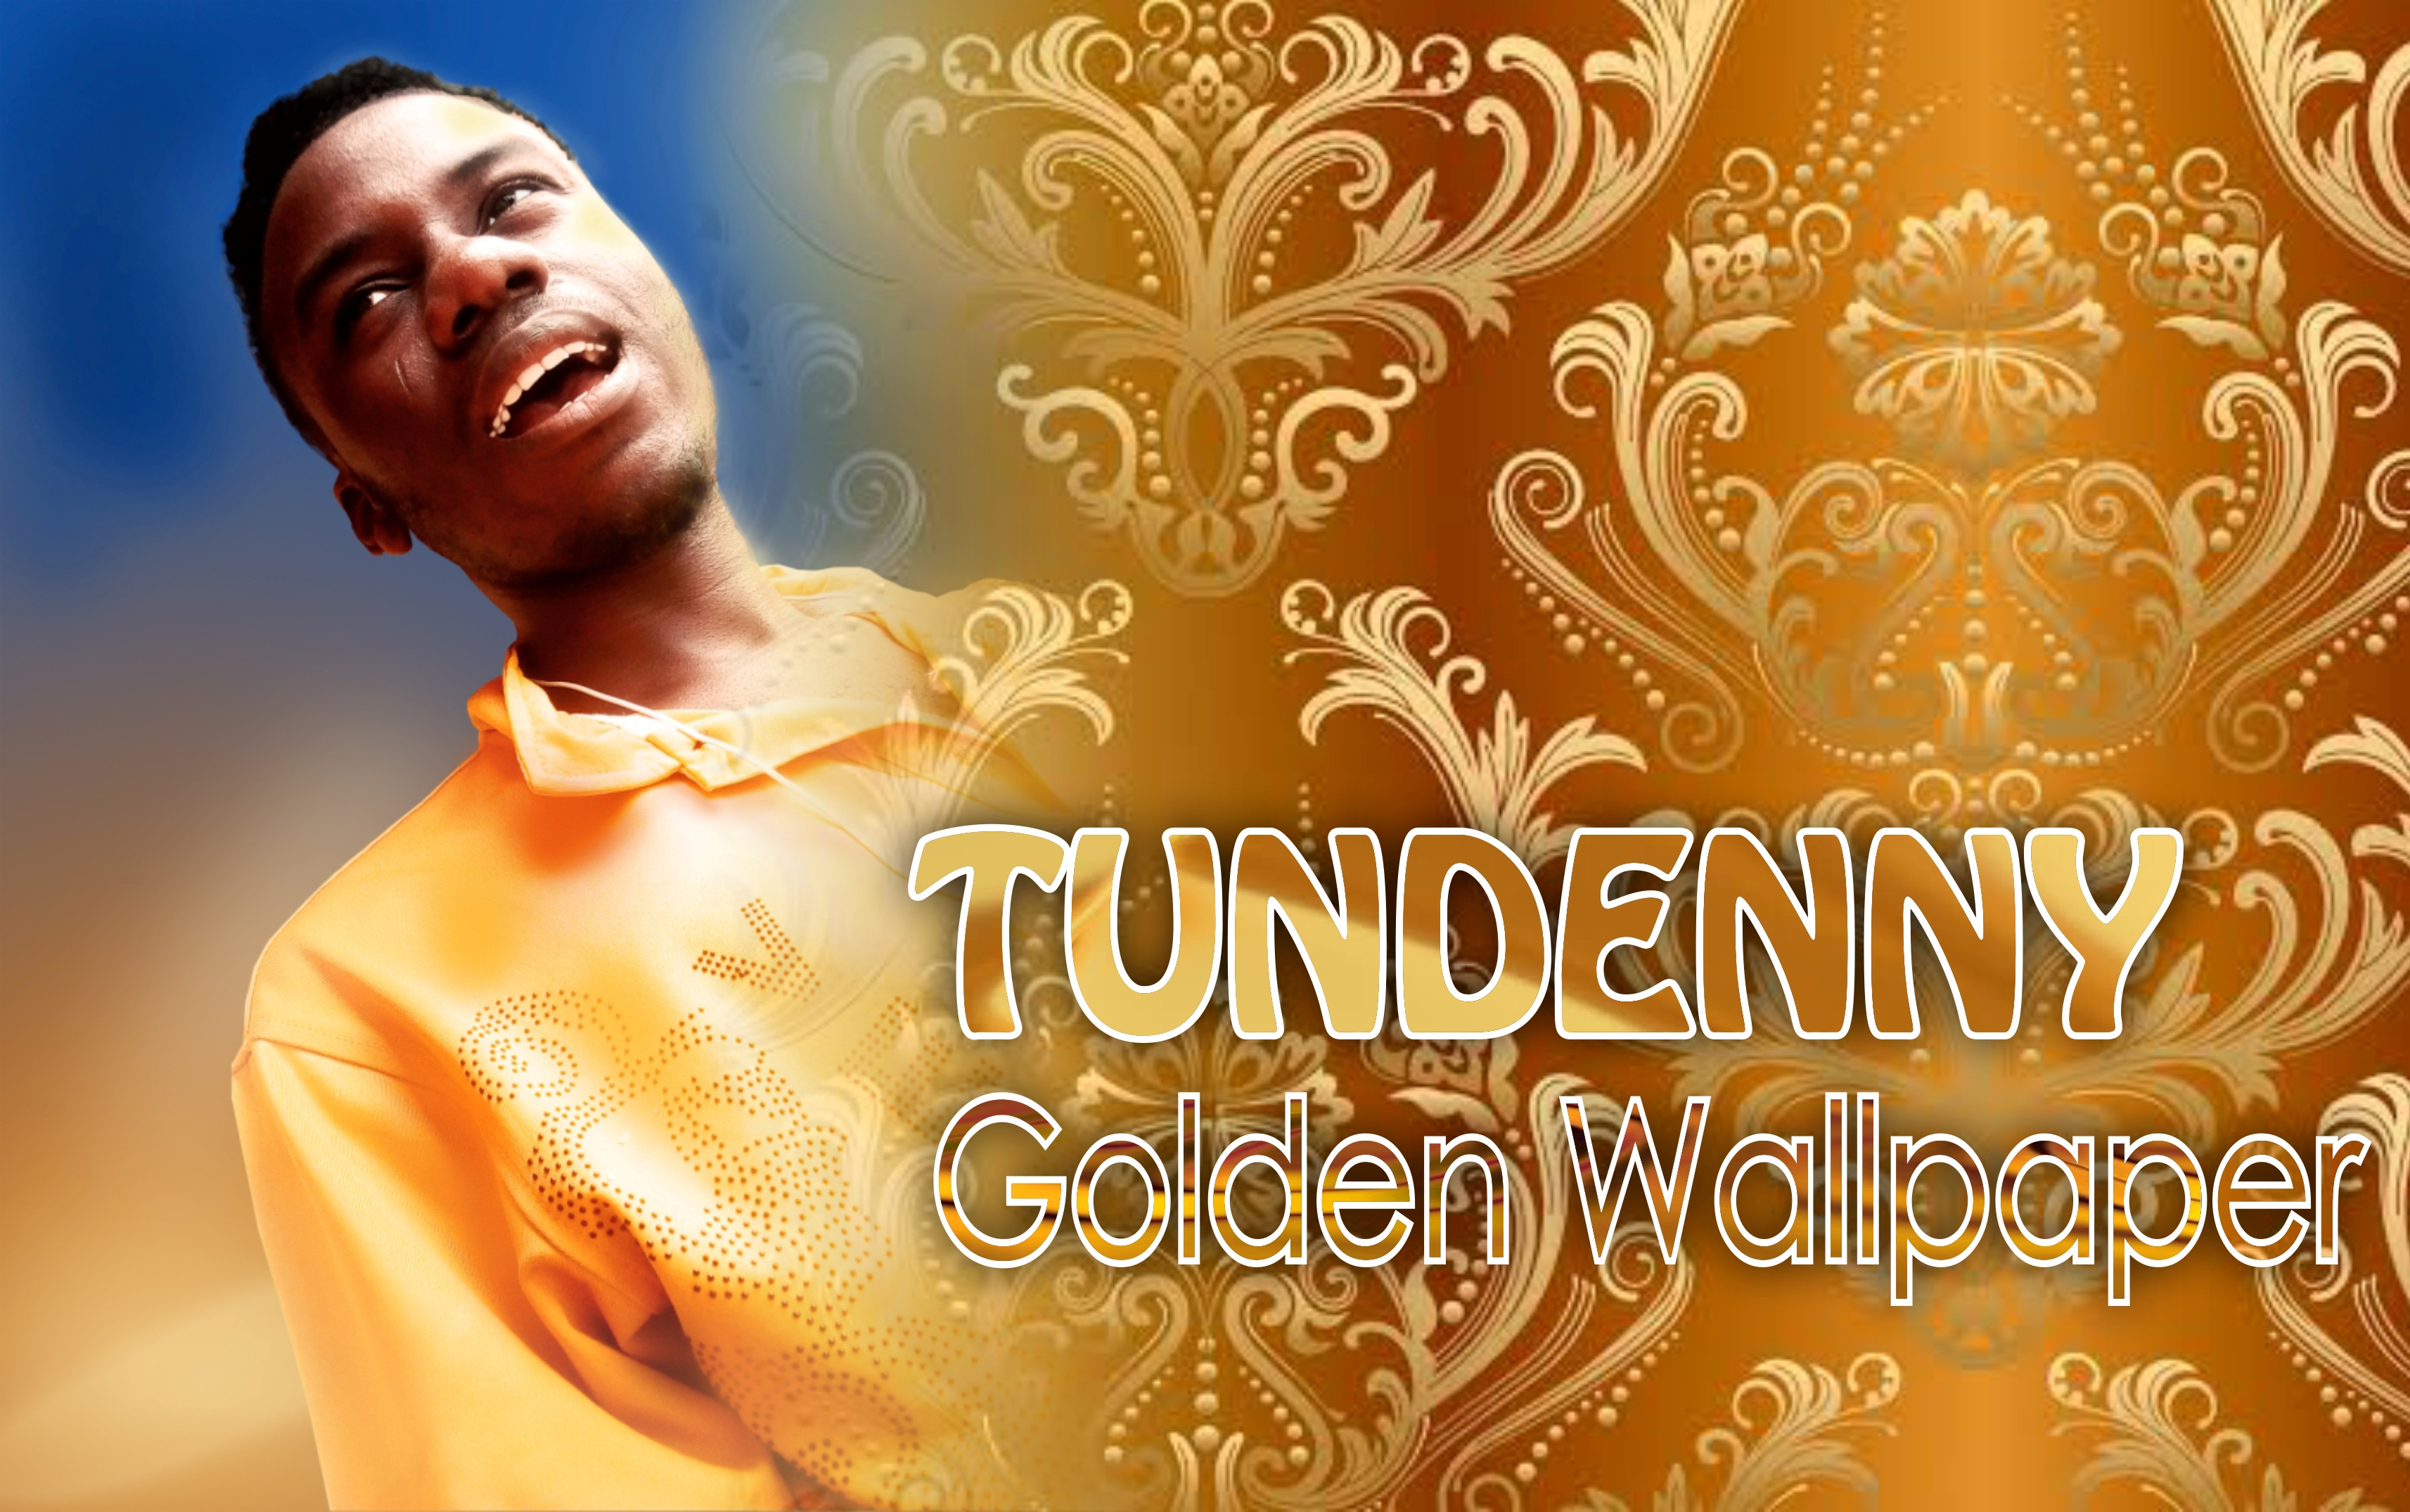 Tundenny Golden Wallpaper Coming Up Soon on 15th February, 2021